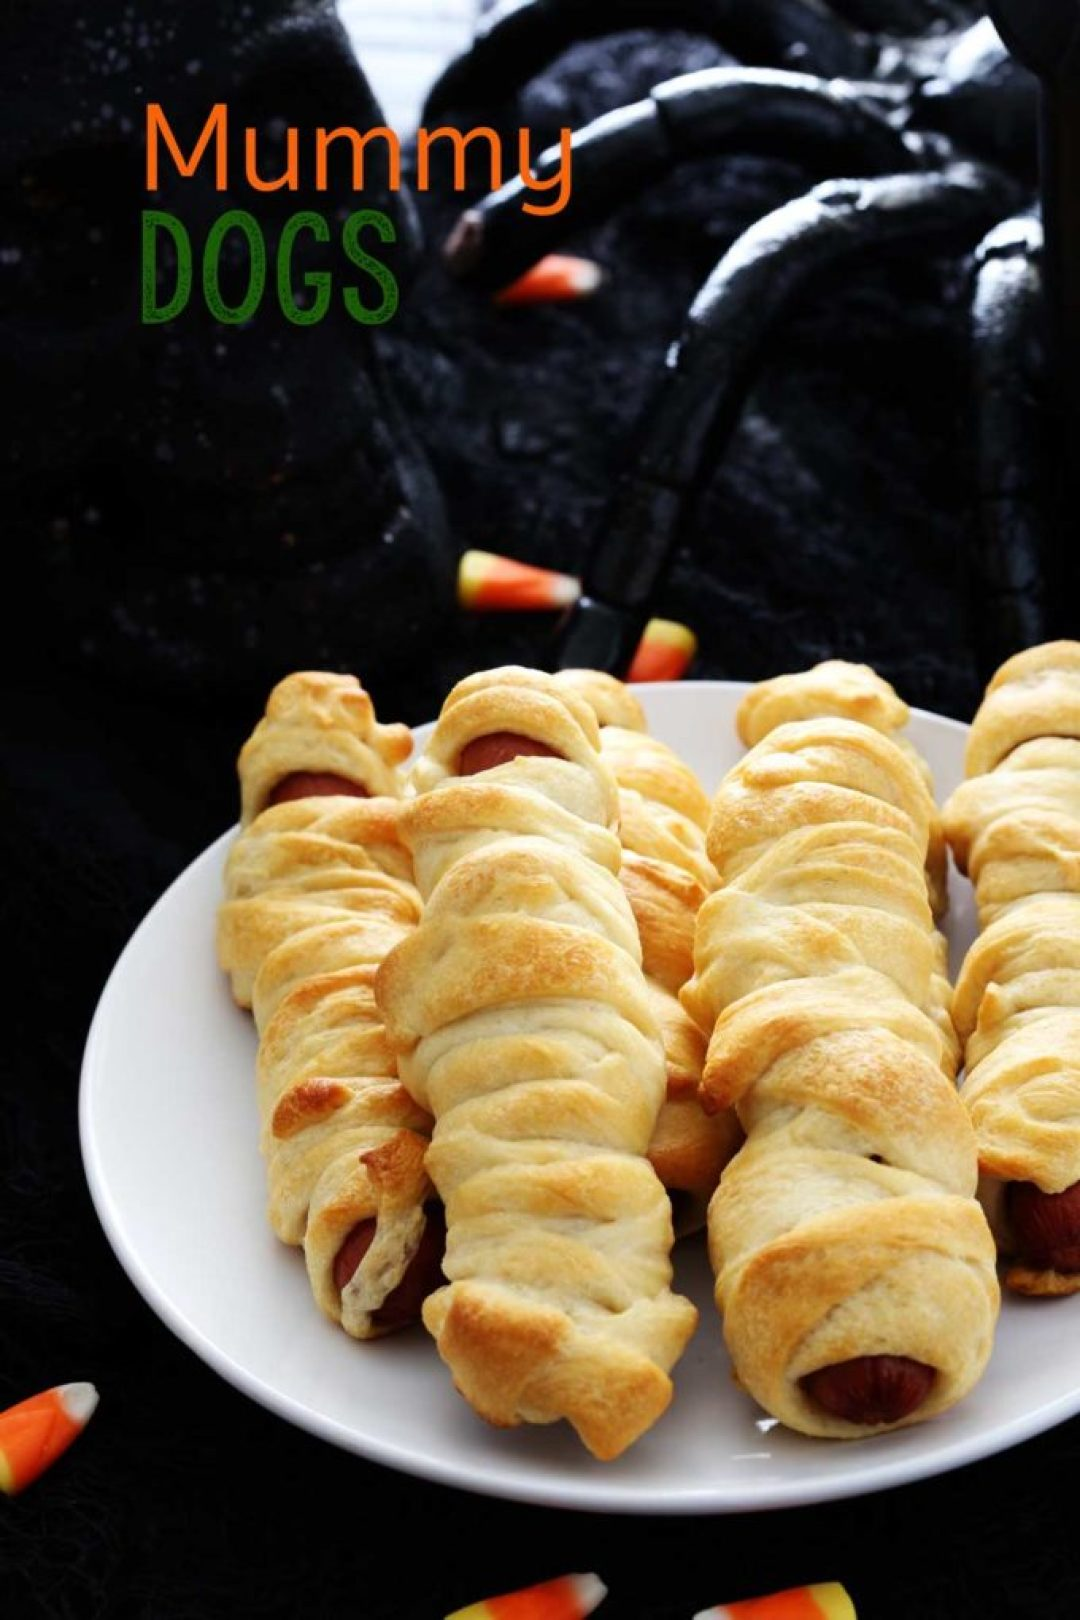 Halloween Mummy Dogs are a perfect meal for Halloween night and lots of fun for the kids! Mummy Dogs are a fun, festive, and easy meal.